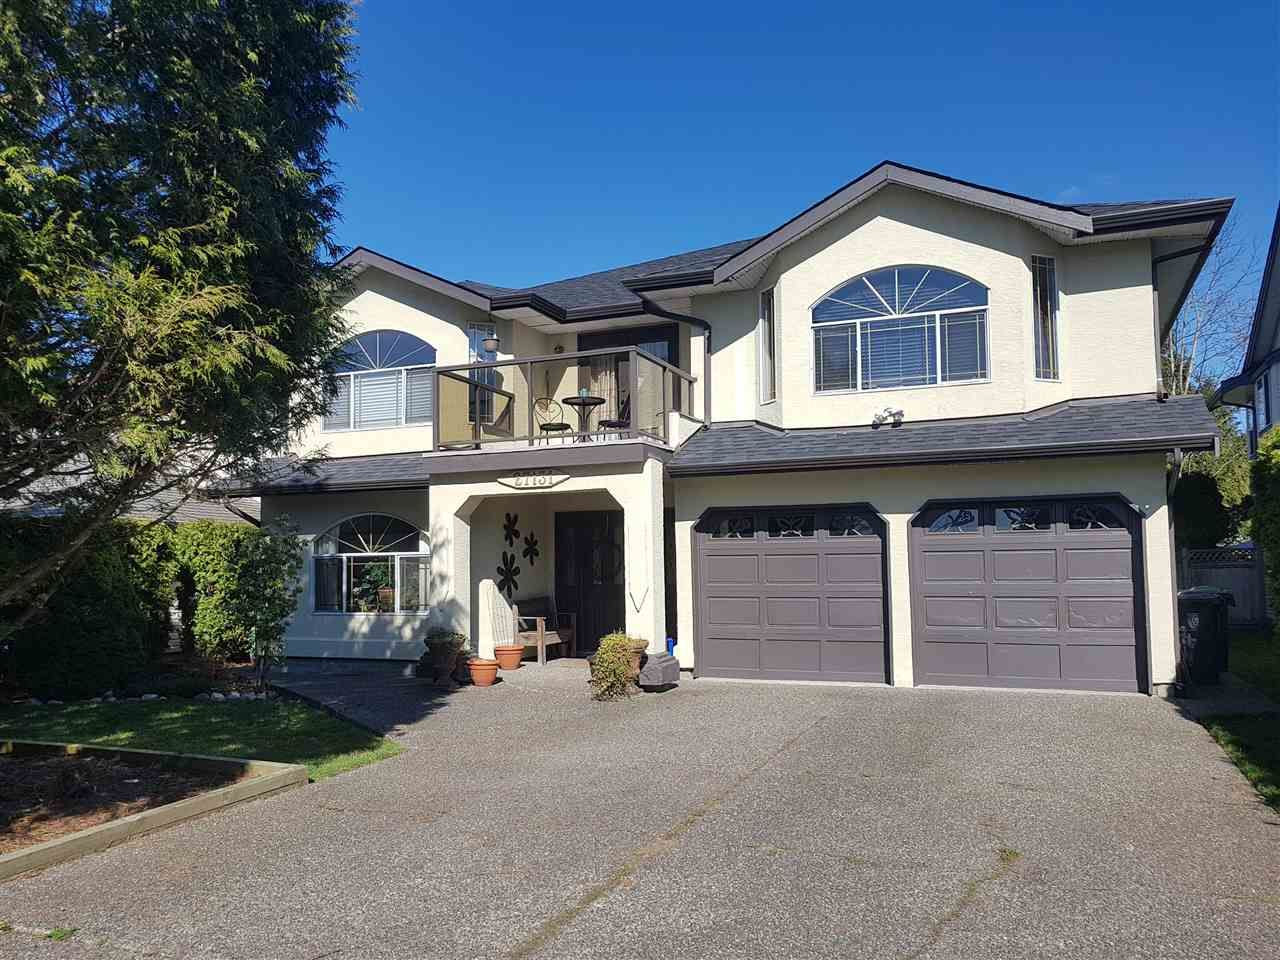 Main Photo: 27131 27 Avenue in Langley: Aldergrove Langley House for sale : MLS®# R2248451